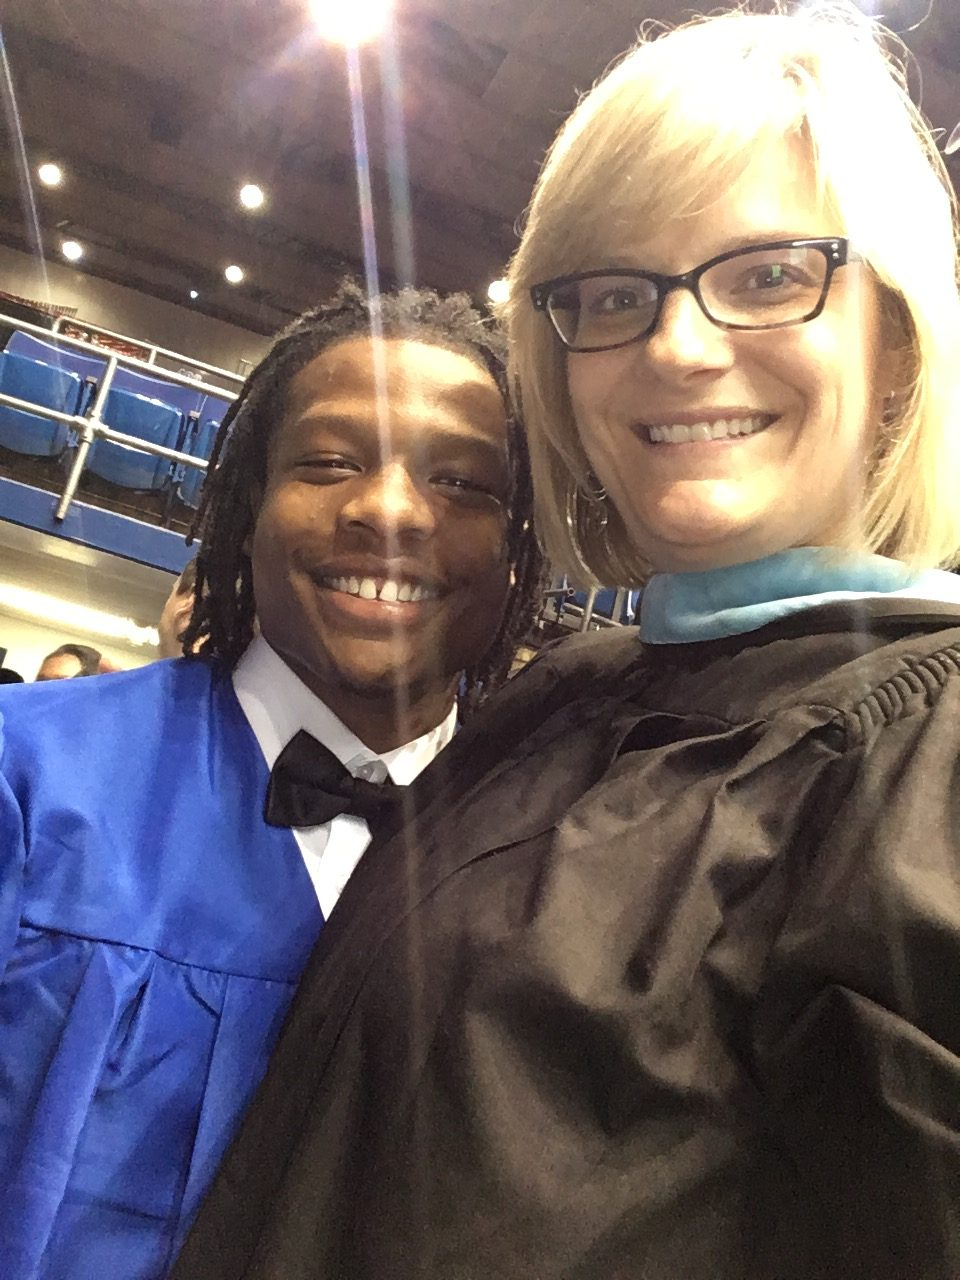 Amy Cox with student at Dunbar High School graduation